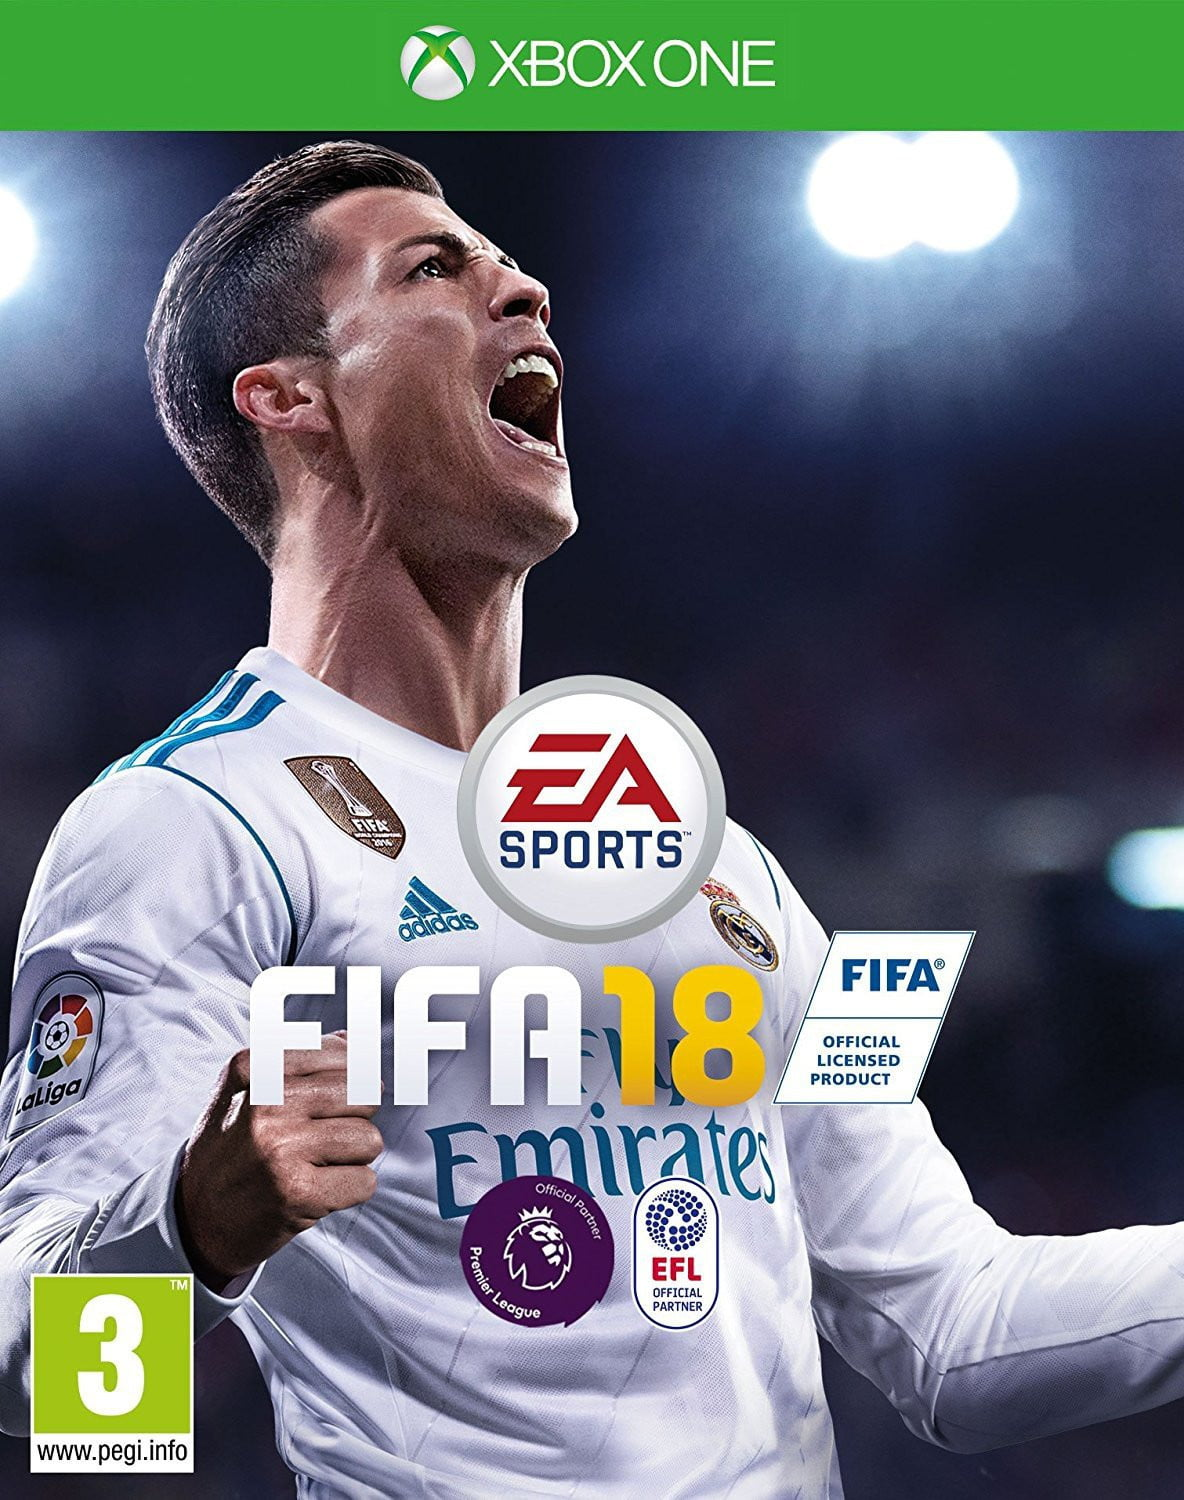 Buy Fifa 18 (En) (XBOX ONE) XBOX ONE in Egypt - Shamy Stores